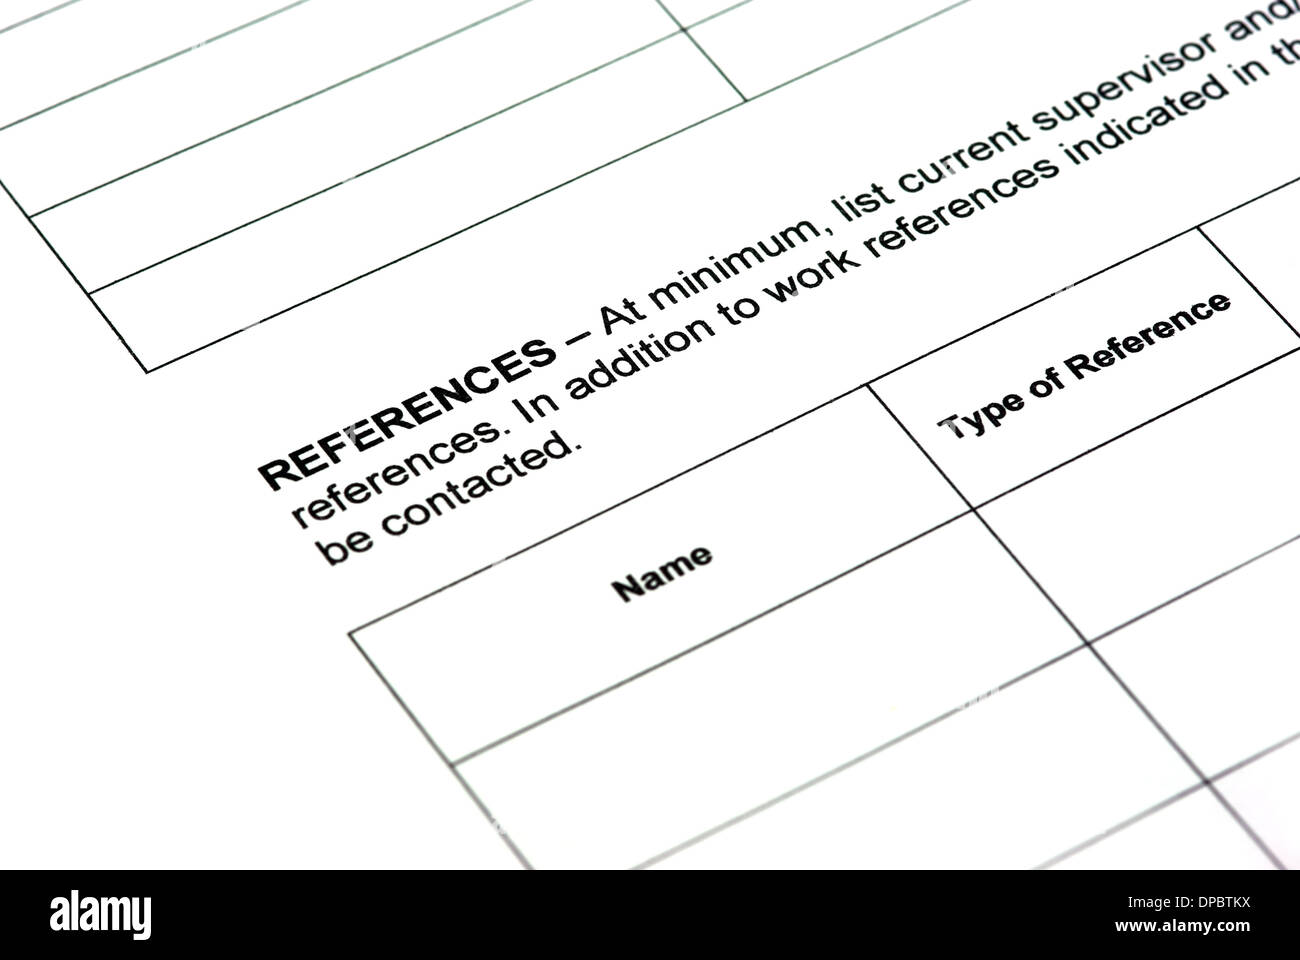 Completing application form: work references. - Stock Image